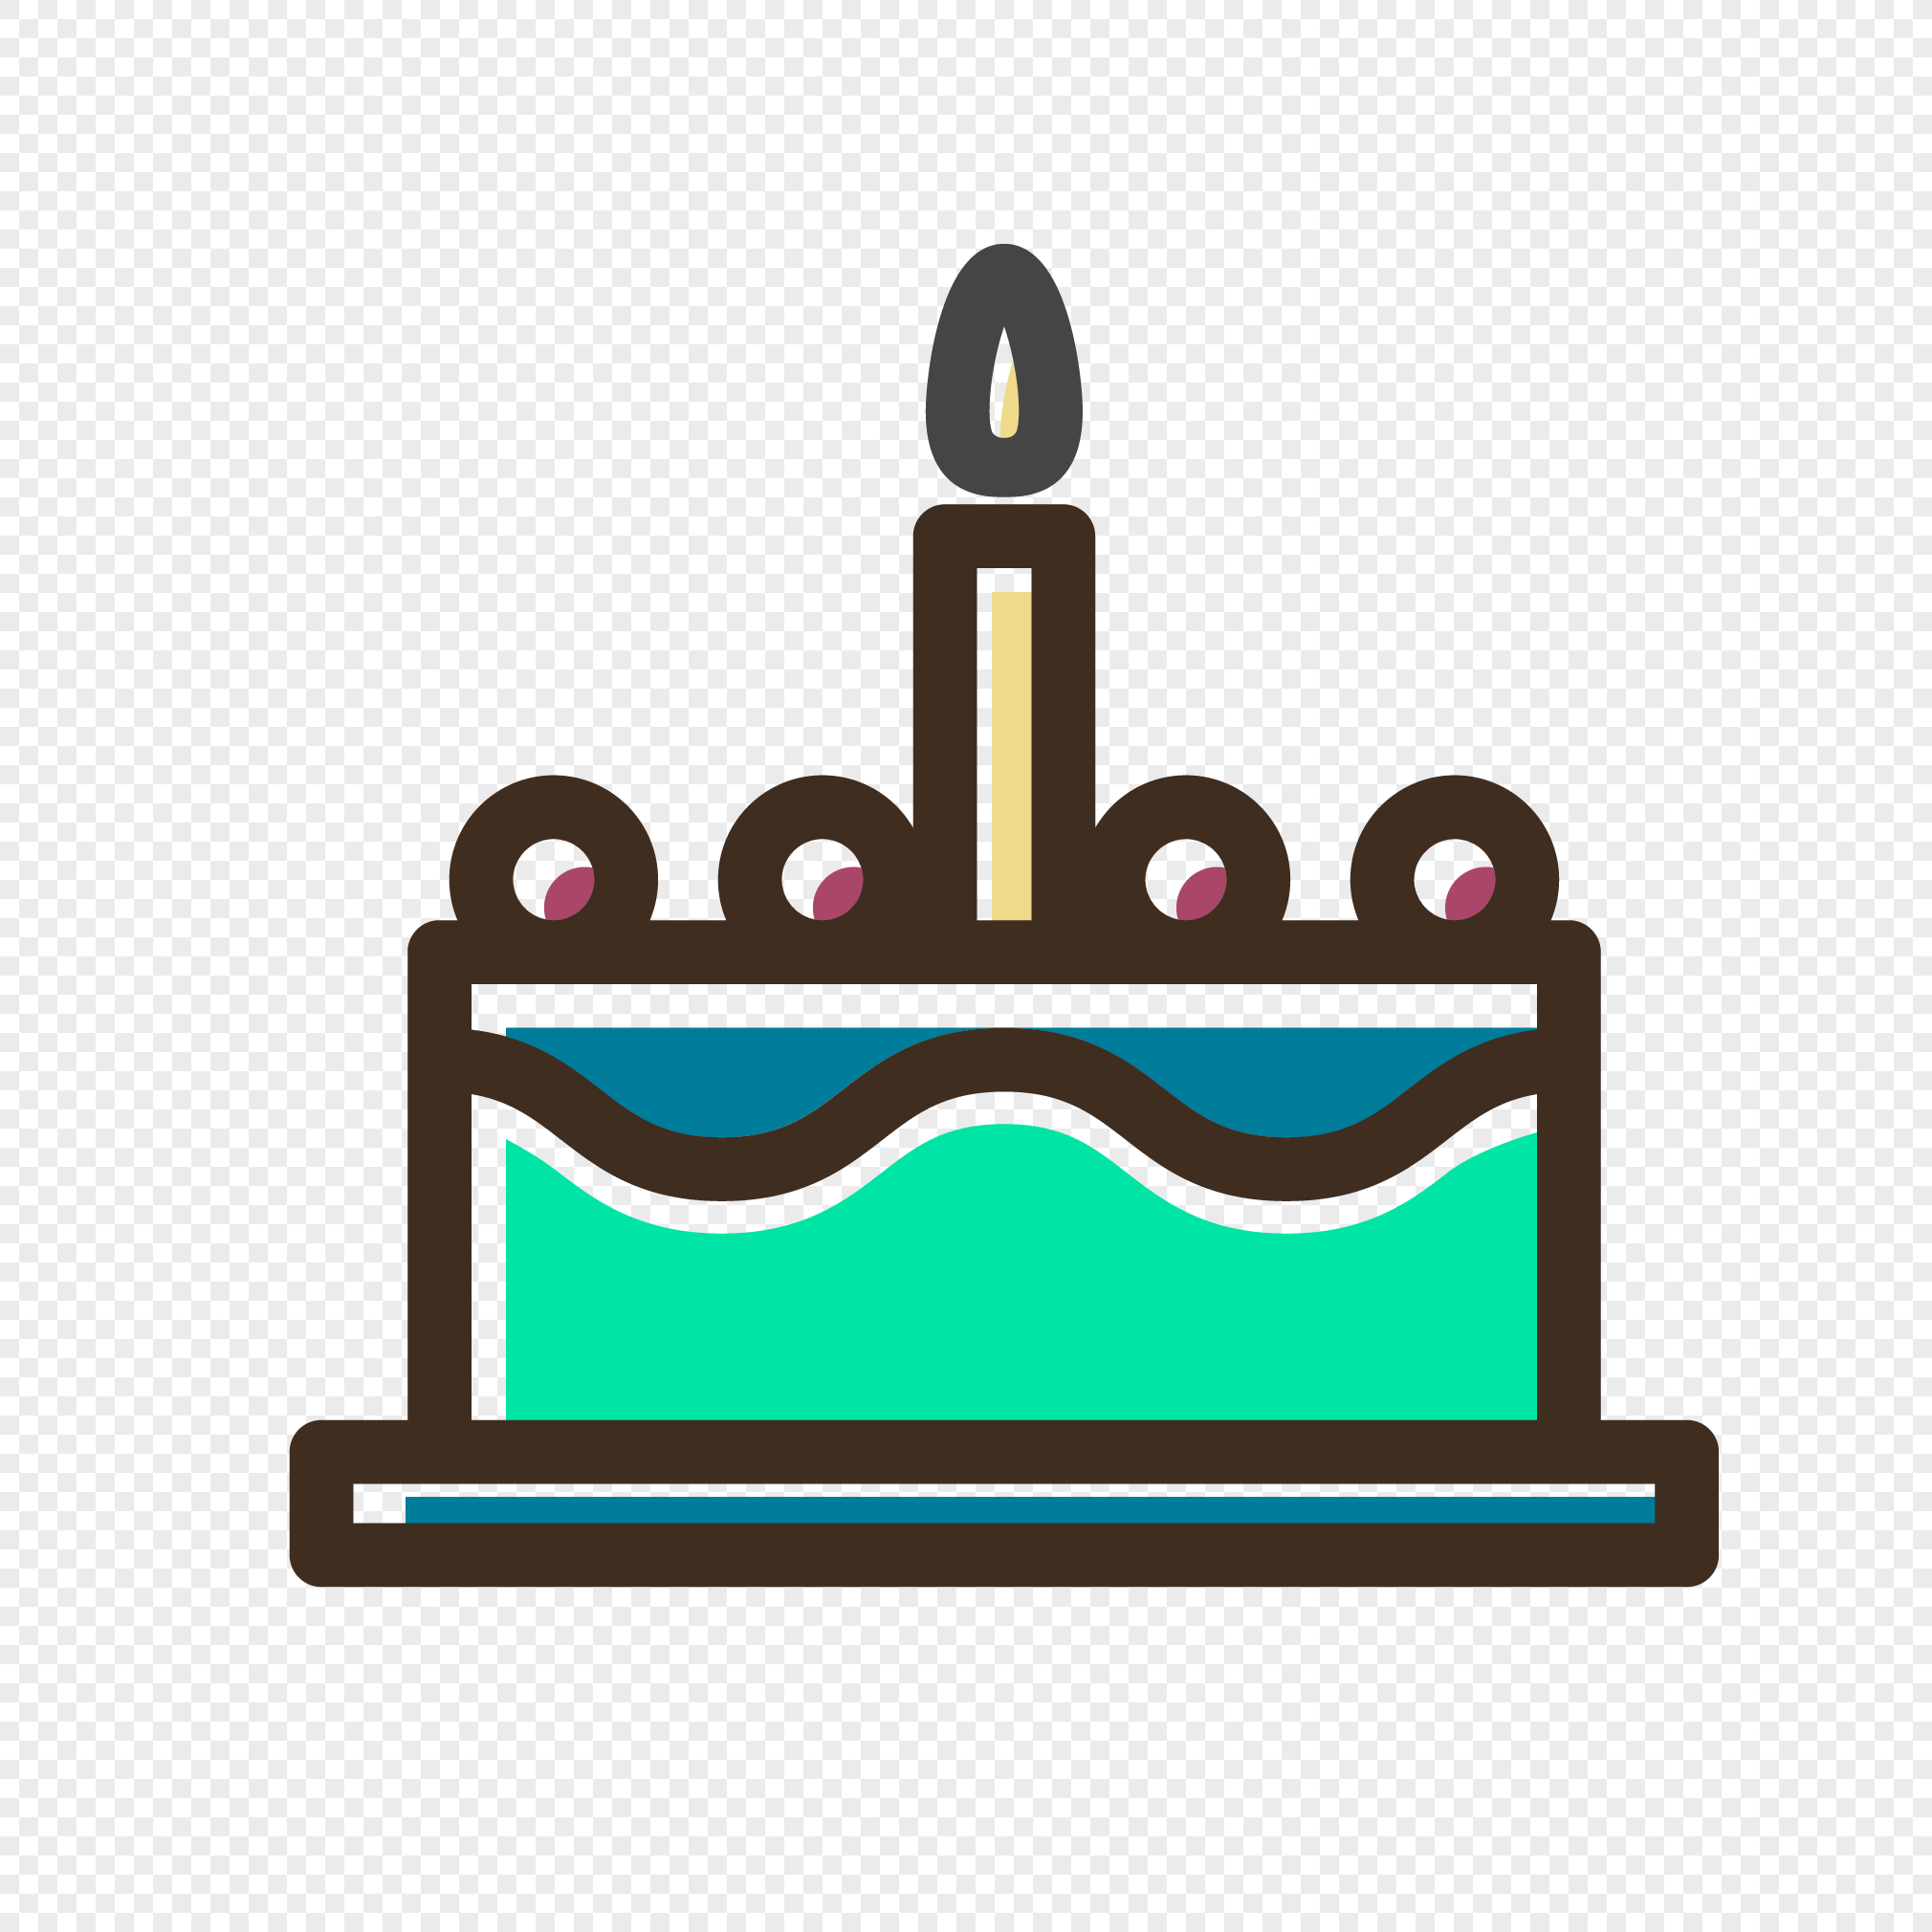 Small Cartoon Birthday Cake Vector Icon Graphics Png Image Picture